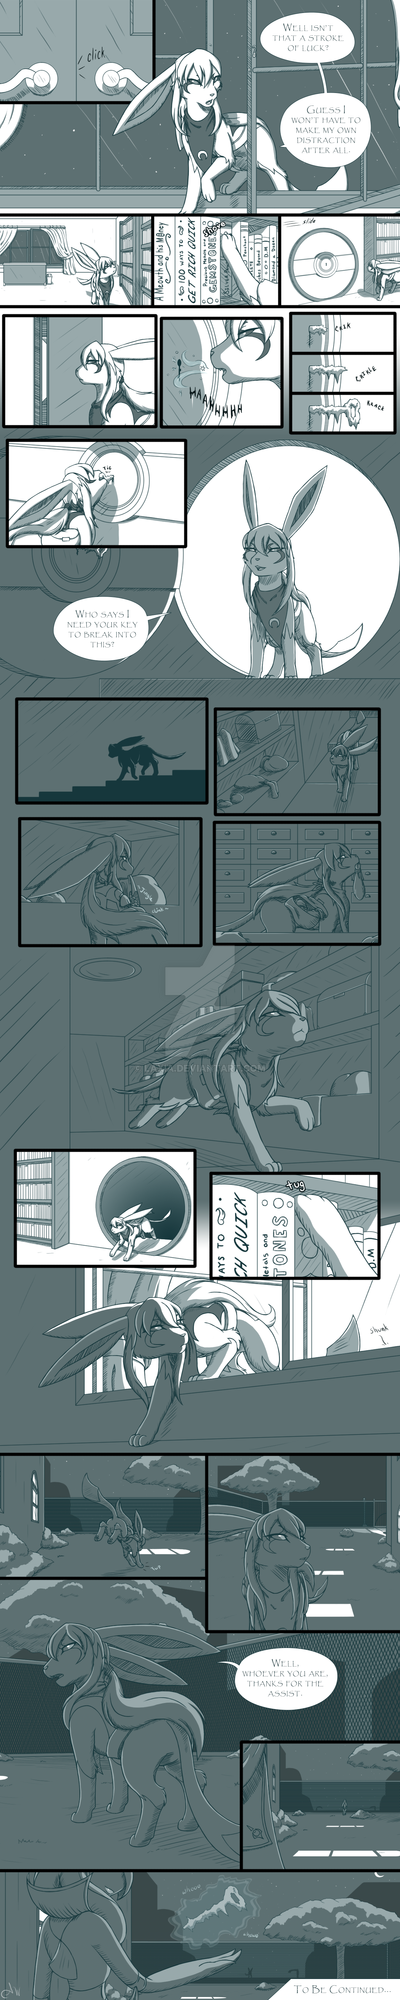 Robinhooding Page 4 by Laxia